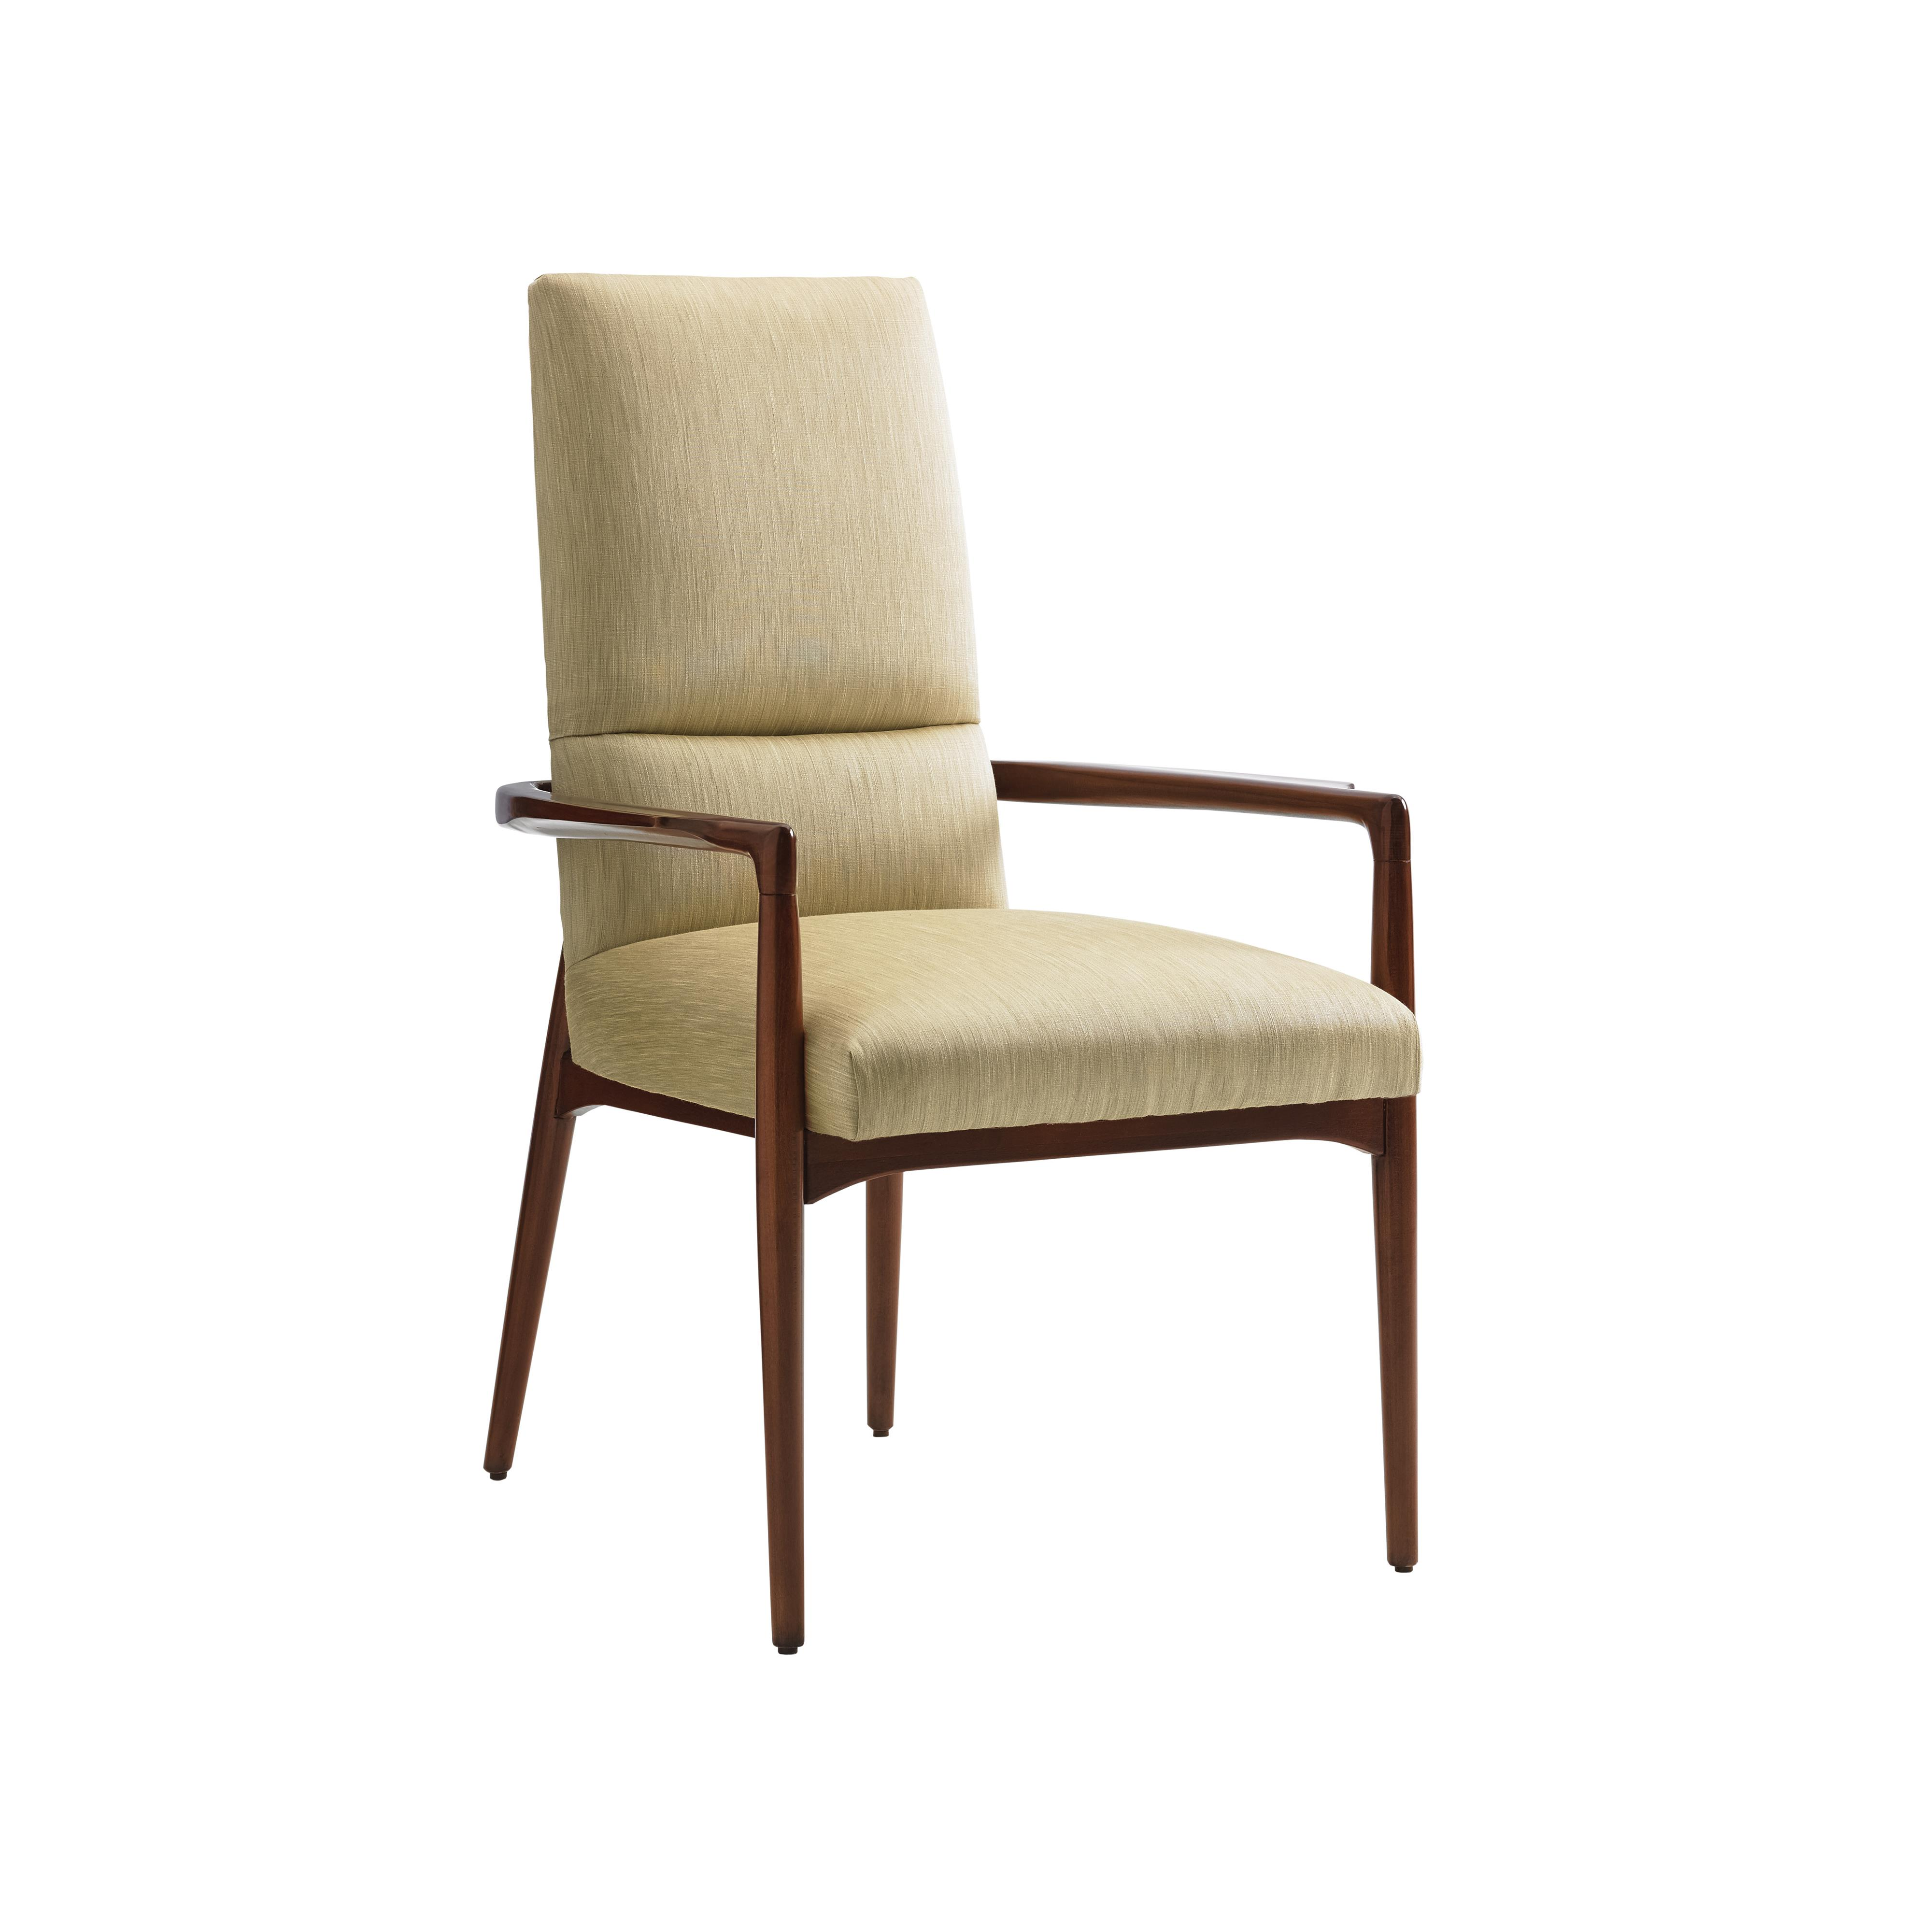 Lexington TAKE FIVE Chelsea Upholstered Arm Chair - Item Number: 723-881-01